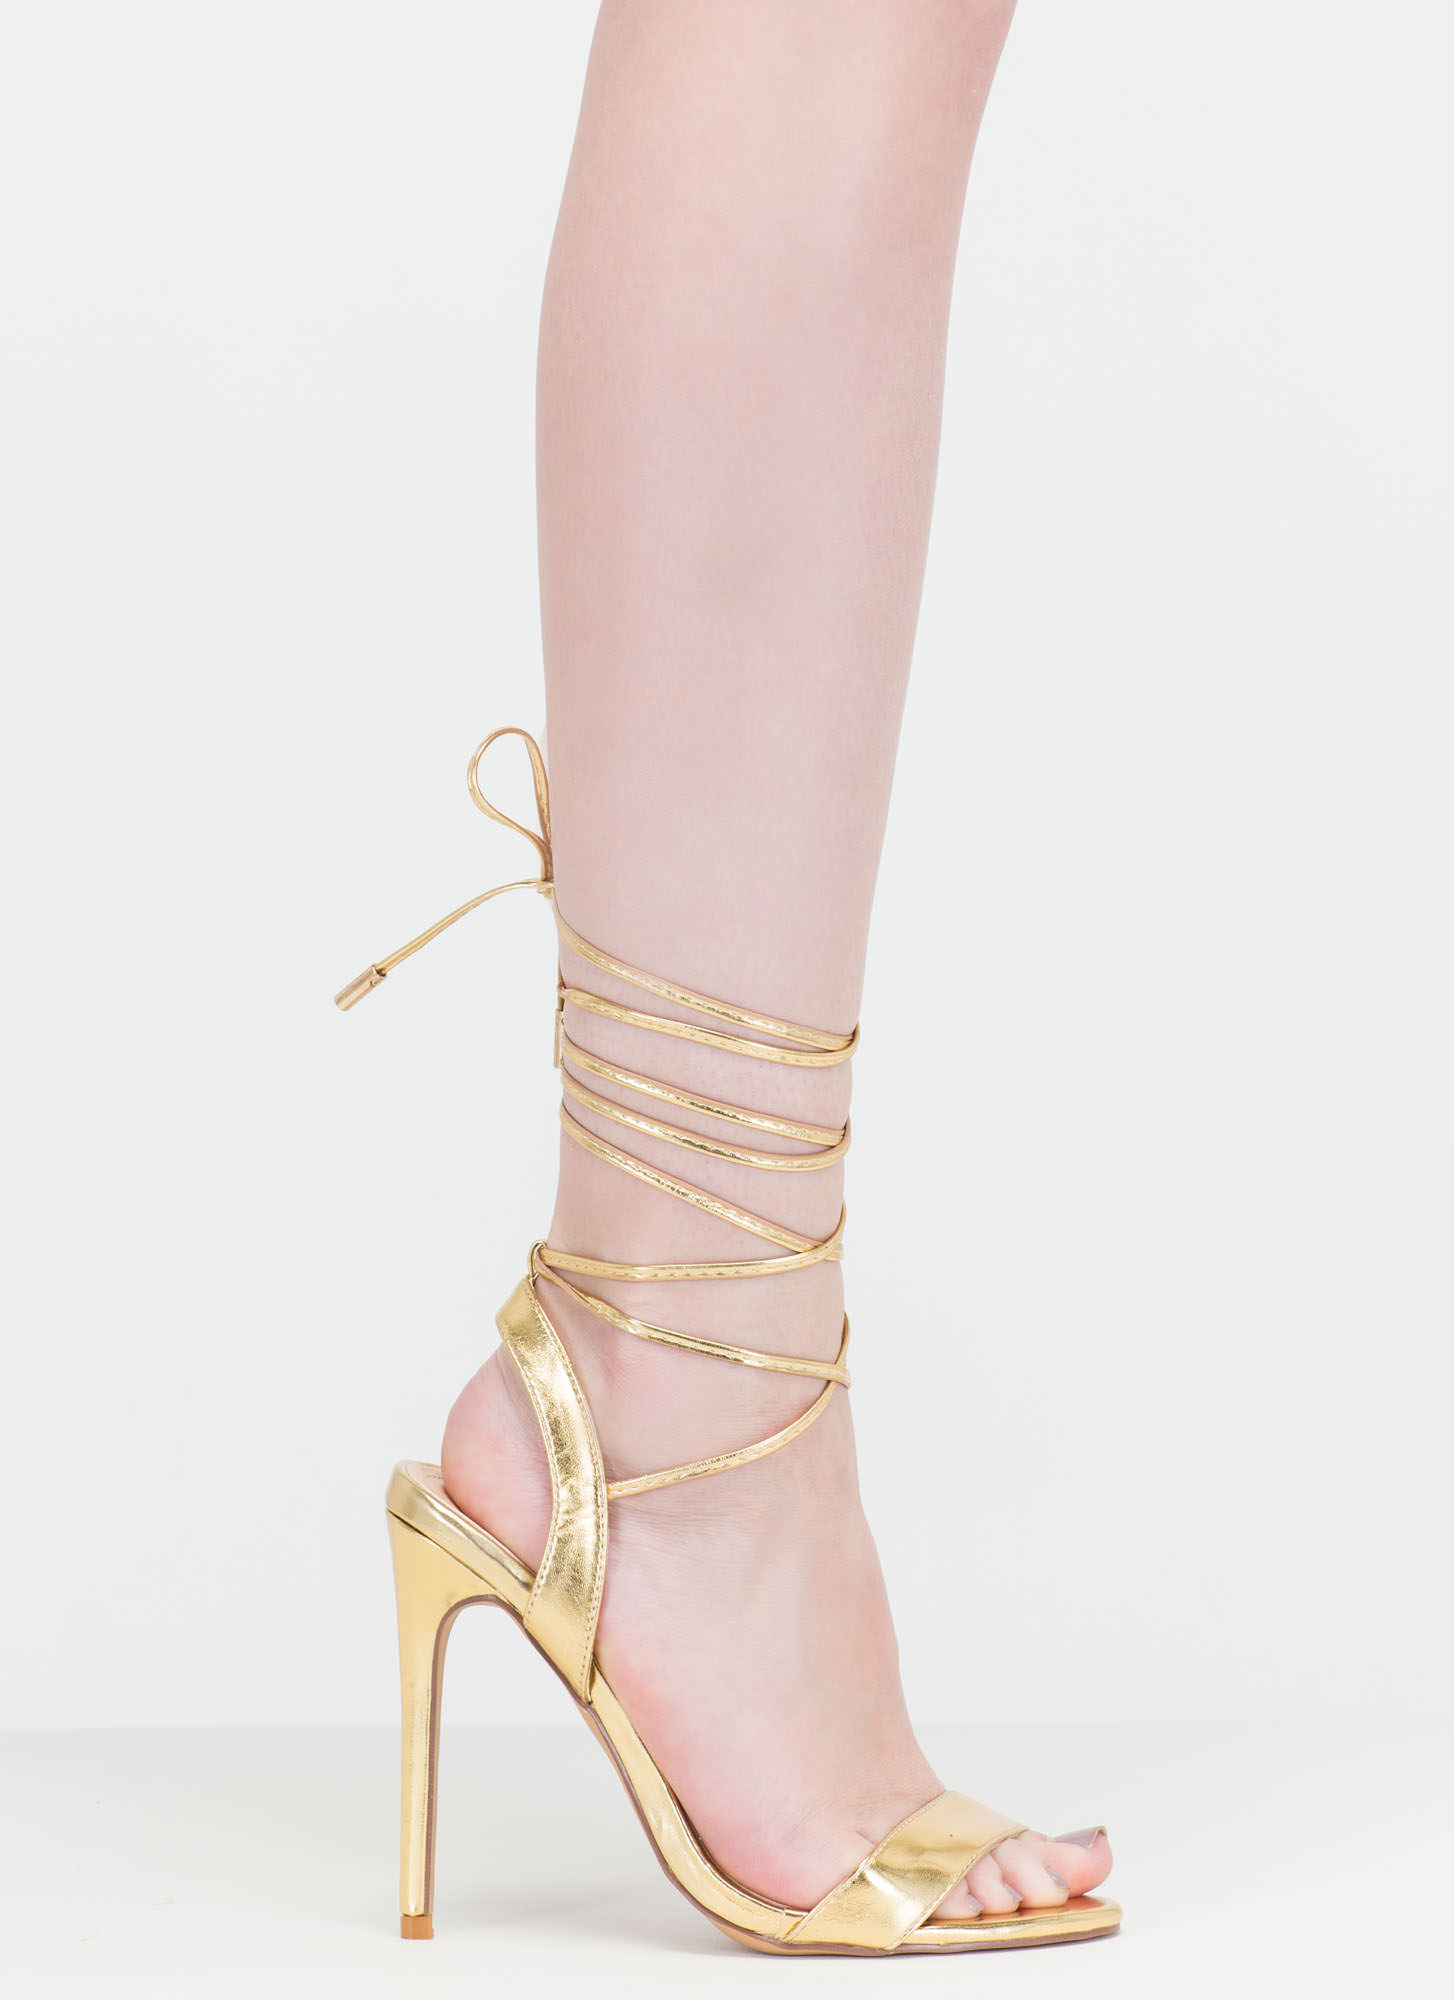 At Long Last Lace-Up Metallic Heels GOLD